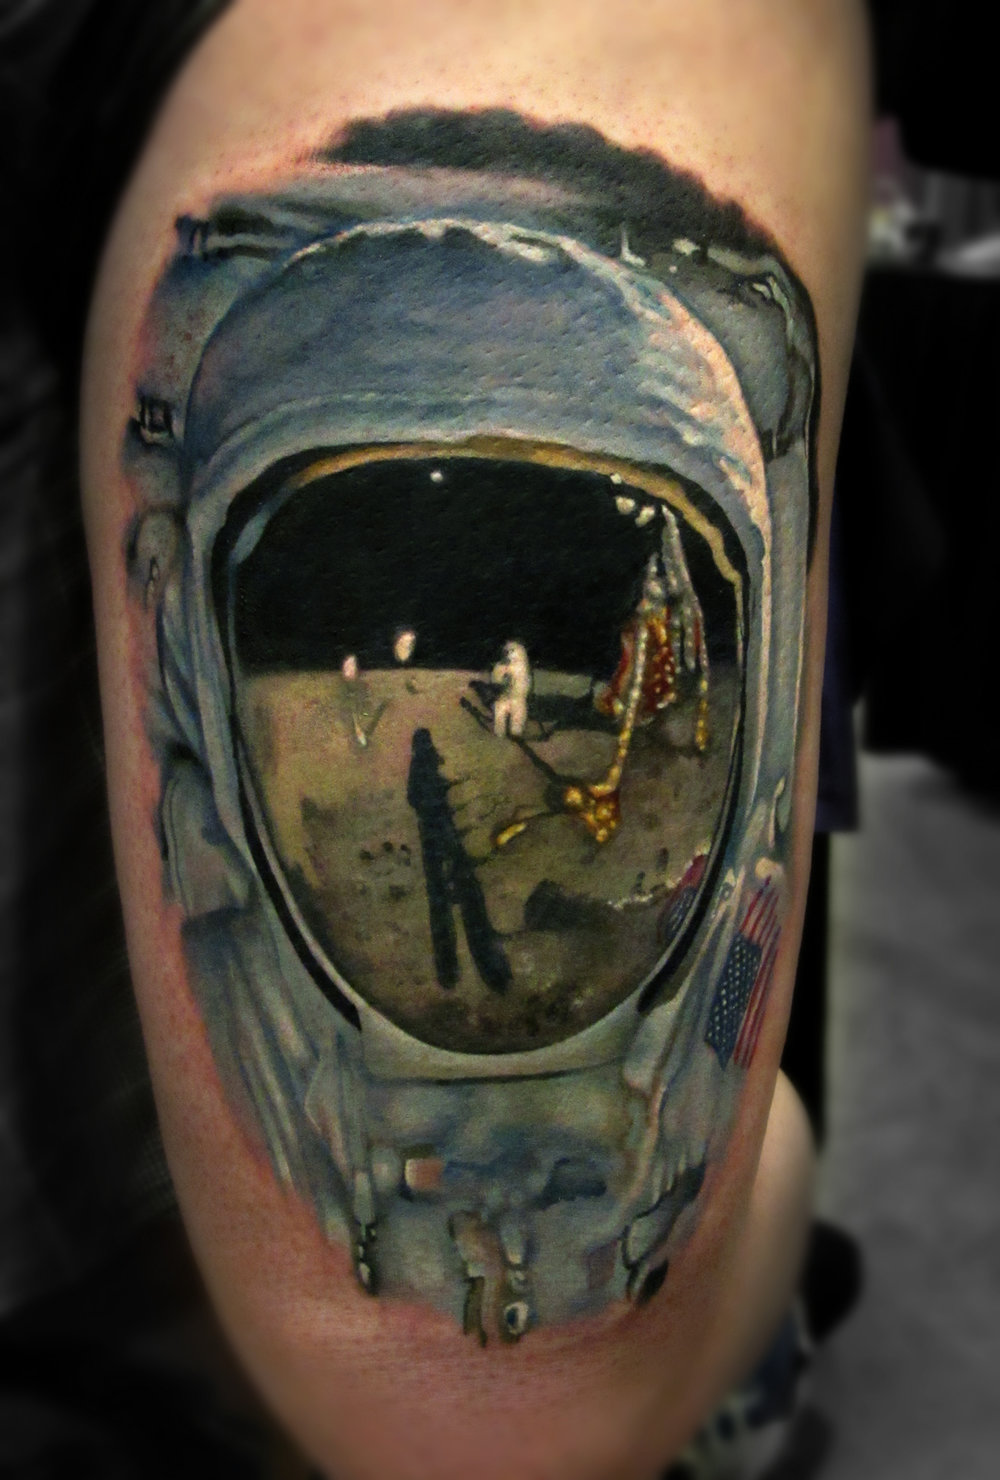 LCT Buzz Aldrin Color Portrait Realism Tattoo.jpg